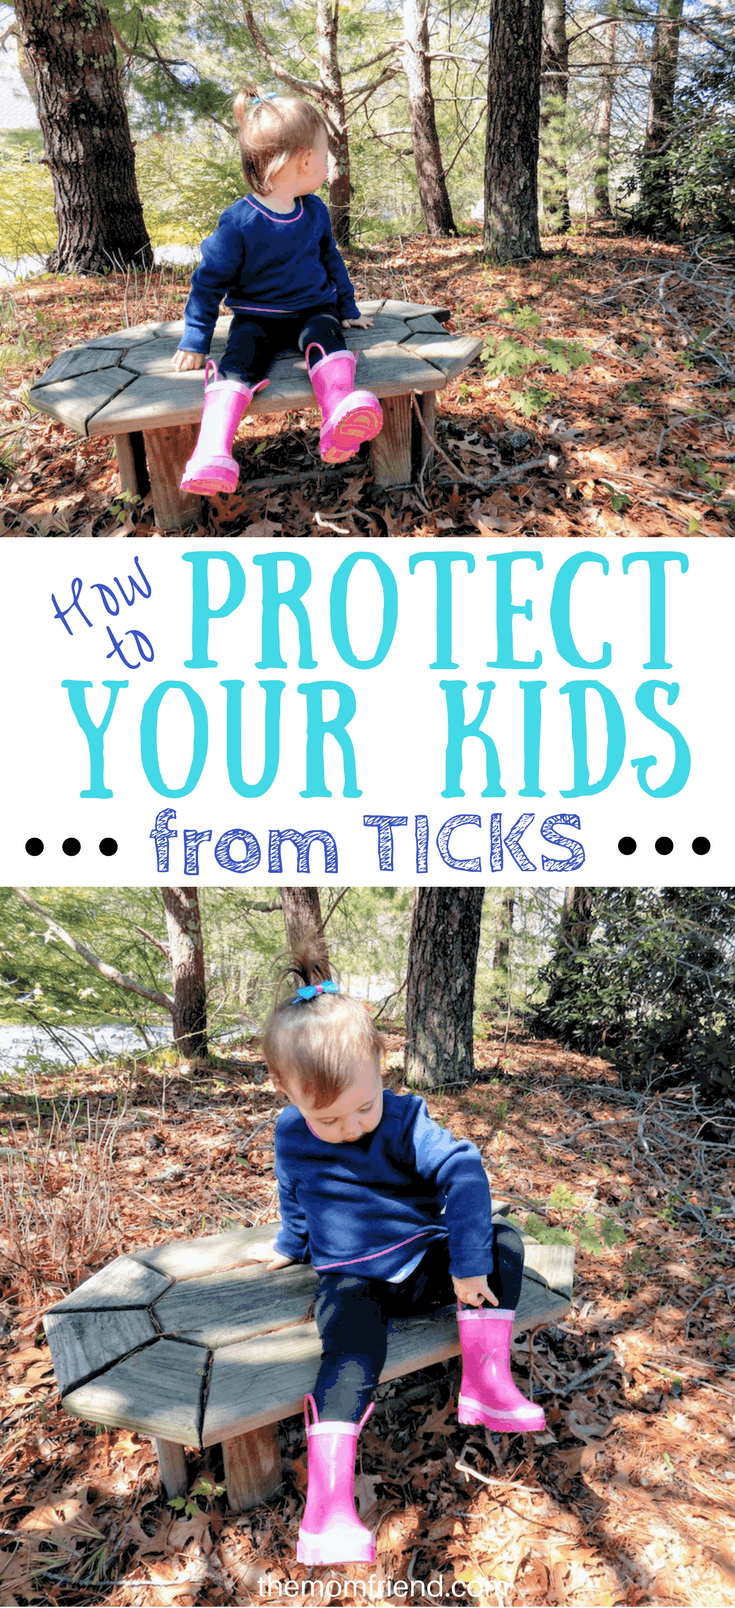 Enjoy the outdoors while keeping your family safe with practical tips from a leading medical expert on how to prevent tick bites and what to do if you find a tick on your kids with expert advice from the Floating Hospital for Children at Tufts Medical Center. | kids health, baby health, summer safety, tick prevention, tick bite care, outdoor summer activities, summer family fun | The Mom Friend